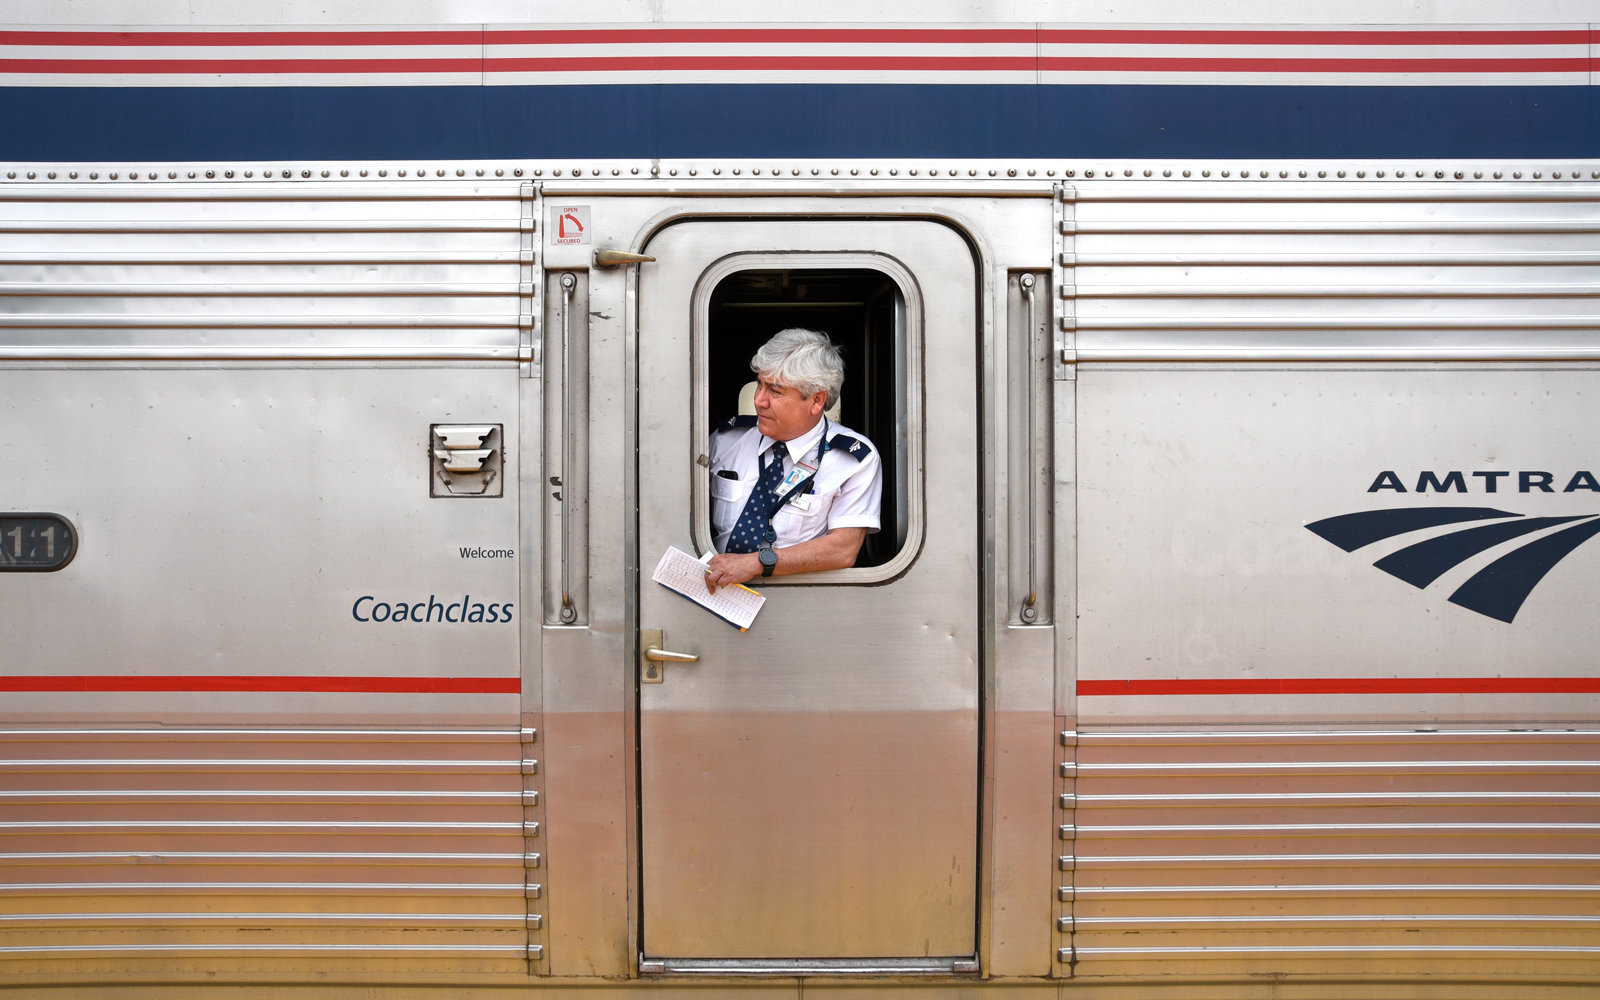 More people are riding Amtrak than ever, according to the company's annual report